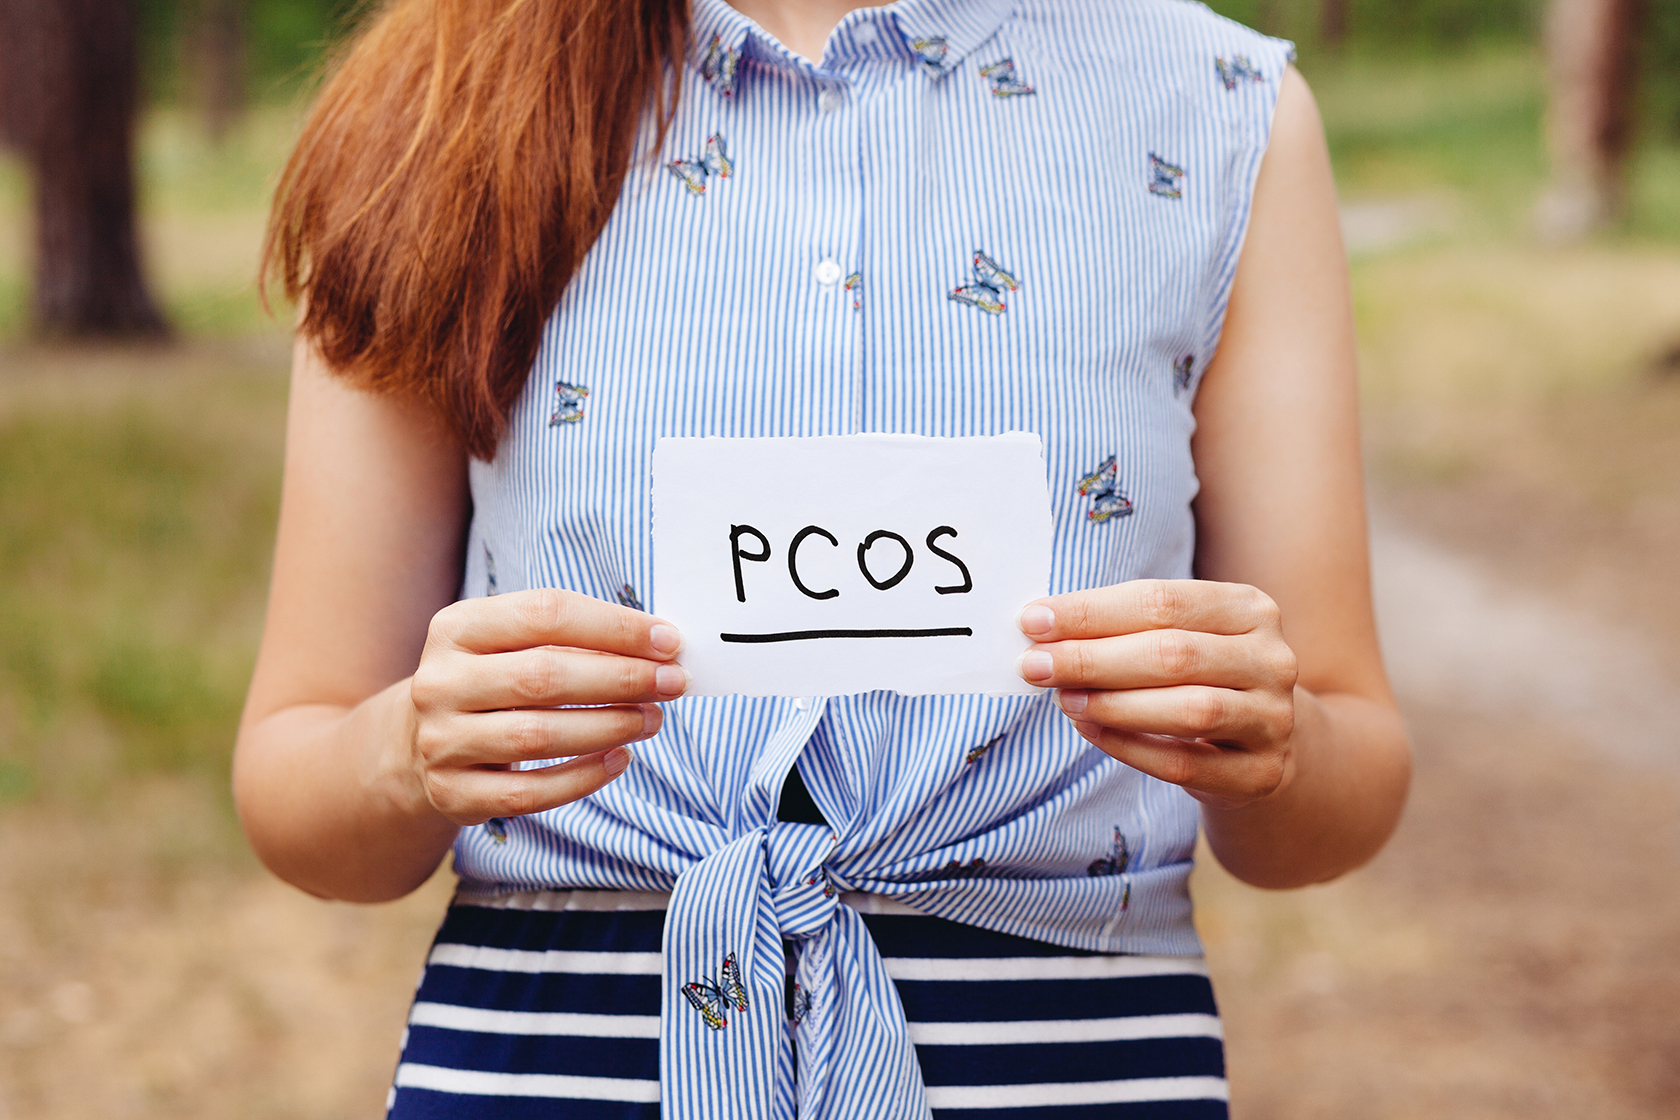 Facts About PCOS